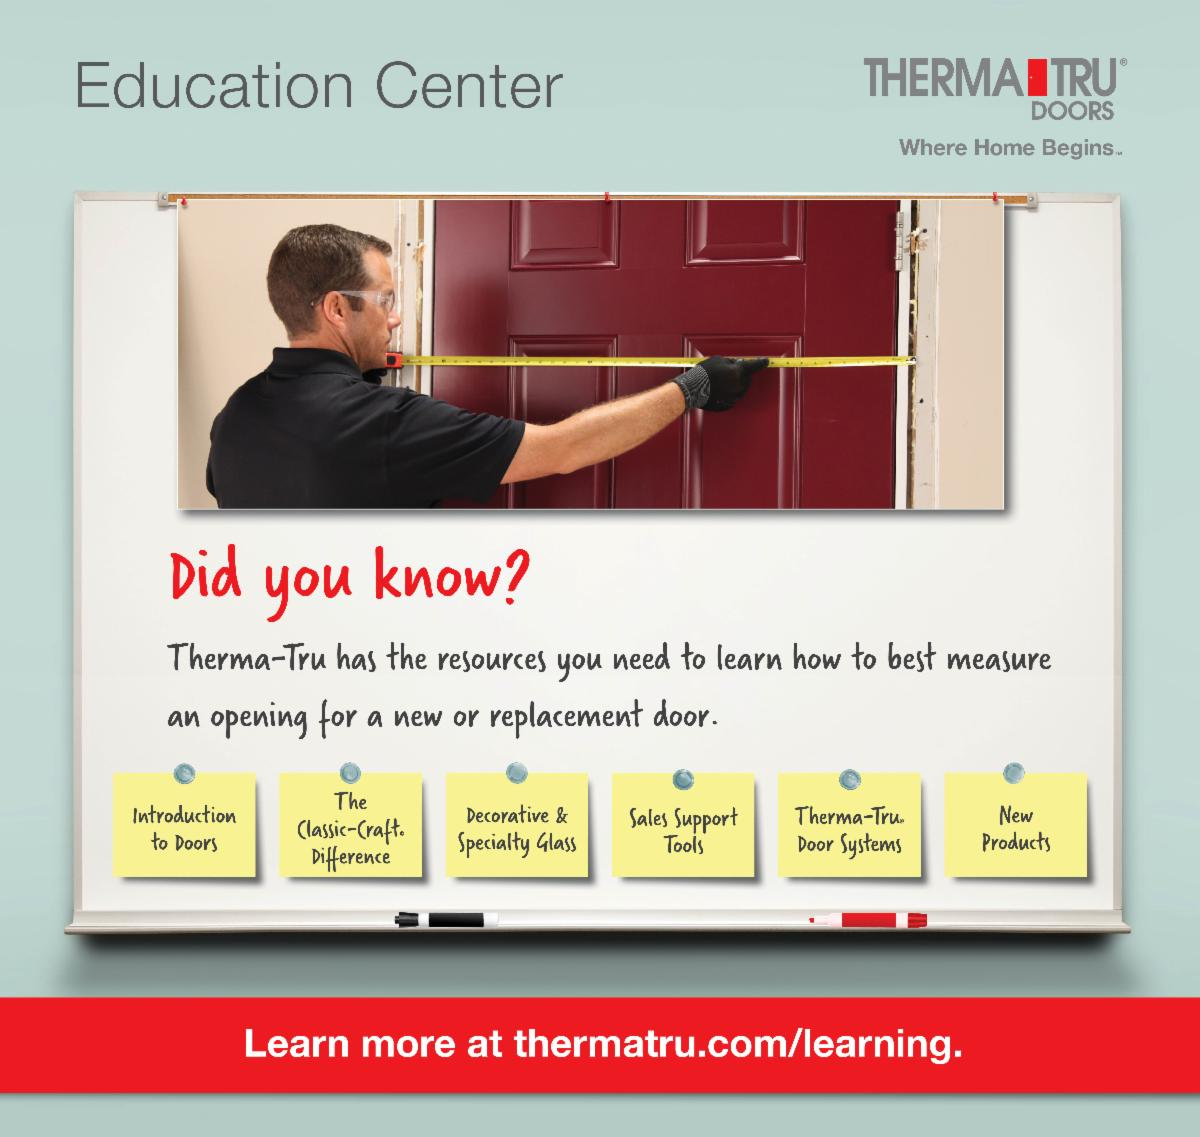 Education Center - Therma-Tru has the resources you need to learn how to best measure an opening for a new or replacement door.